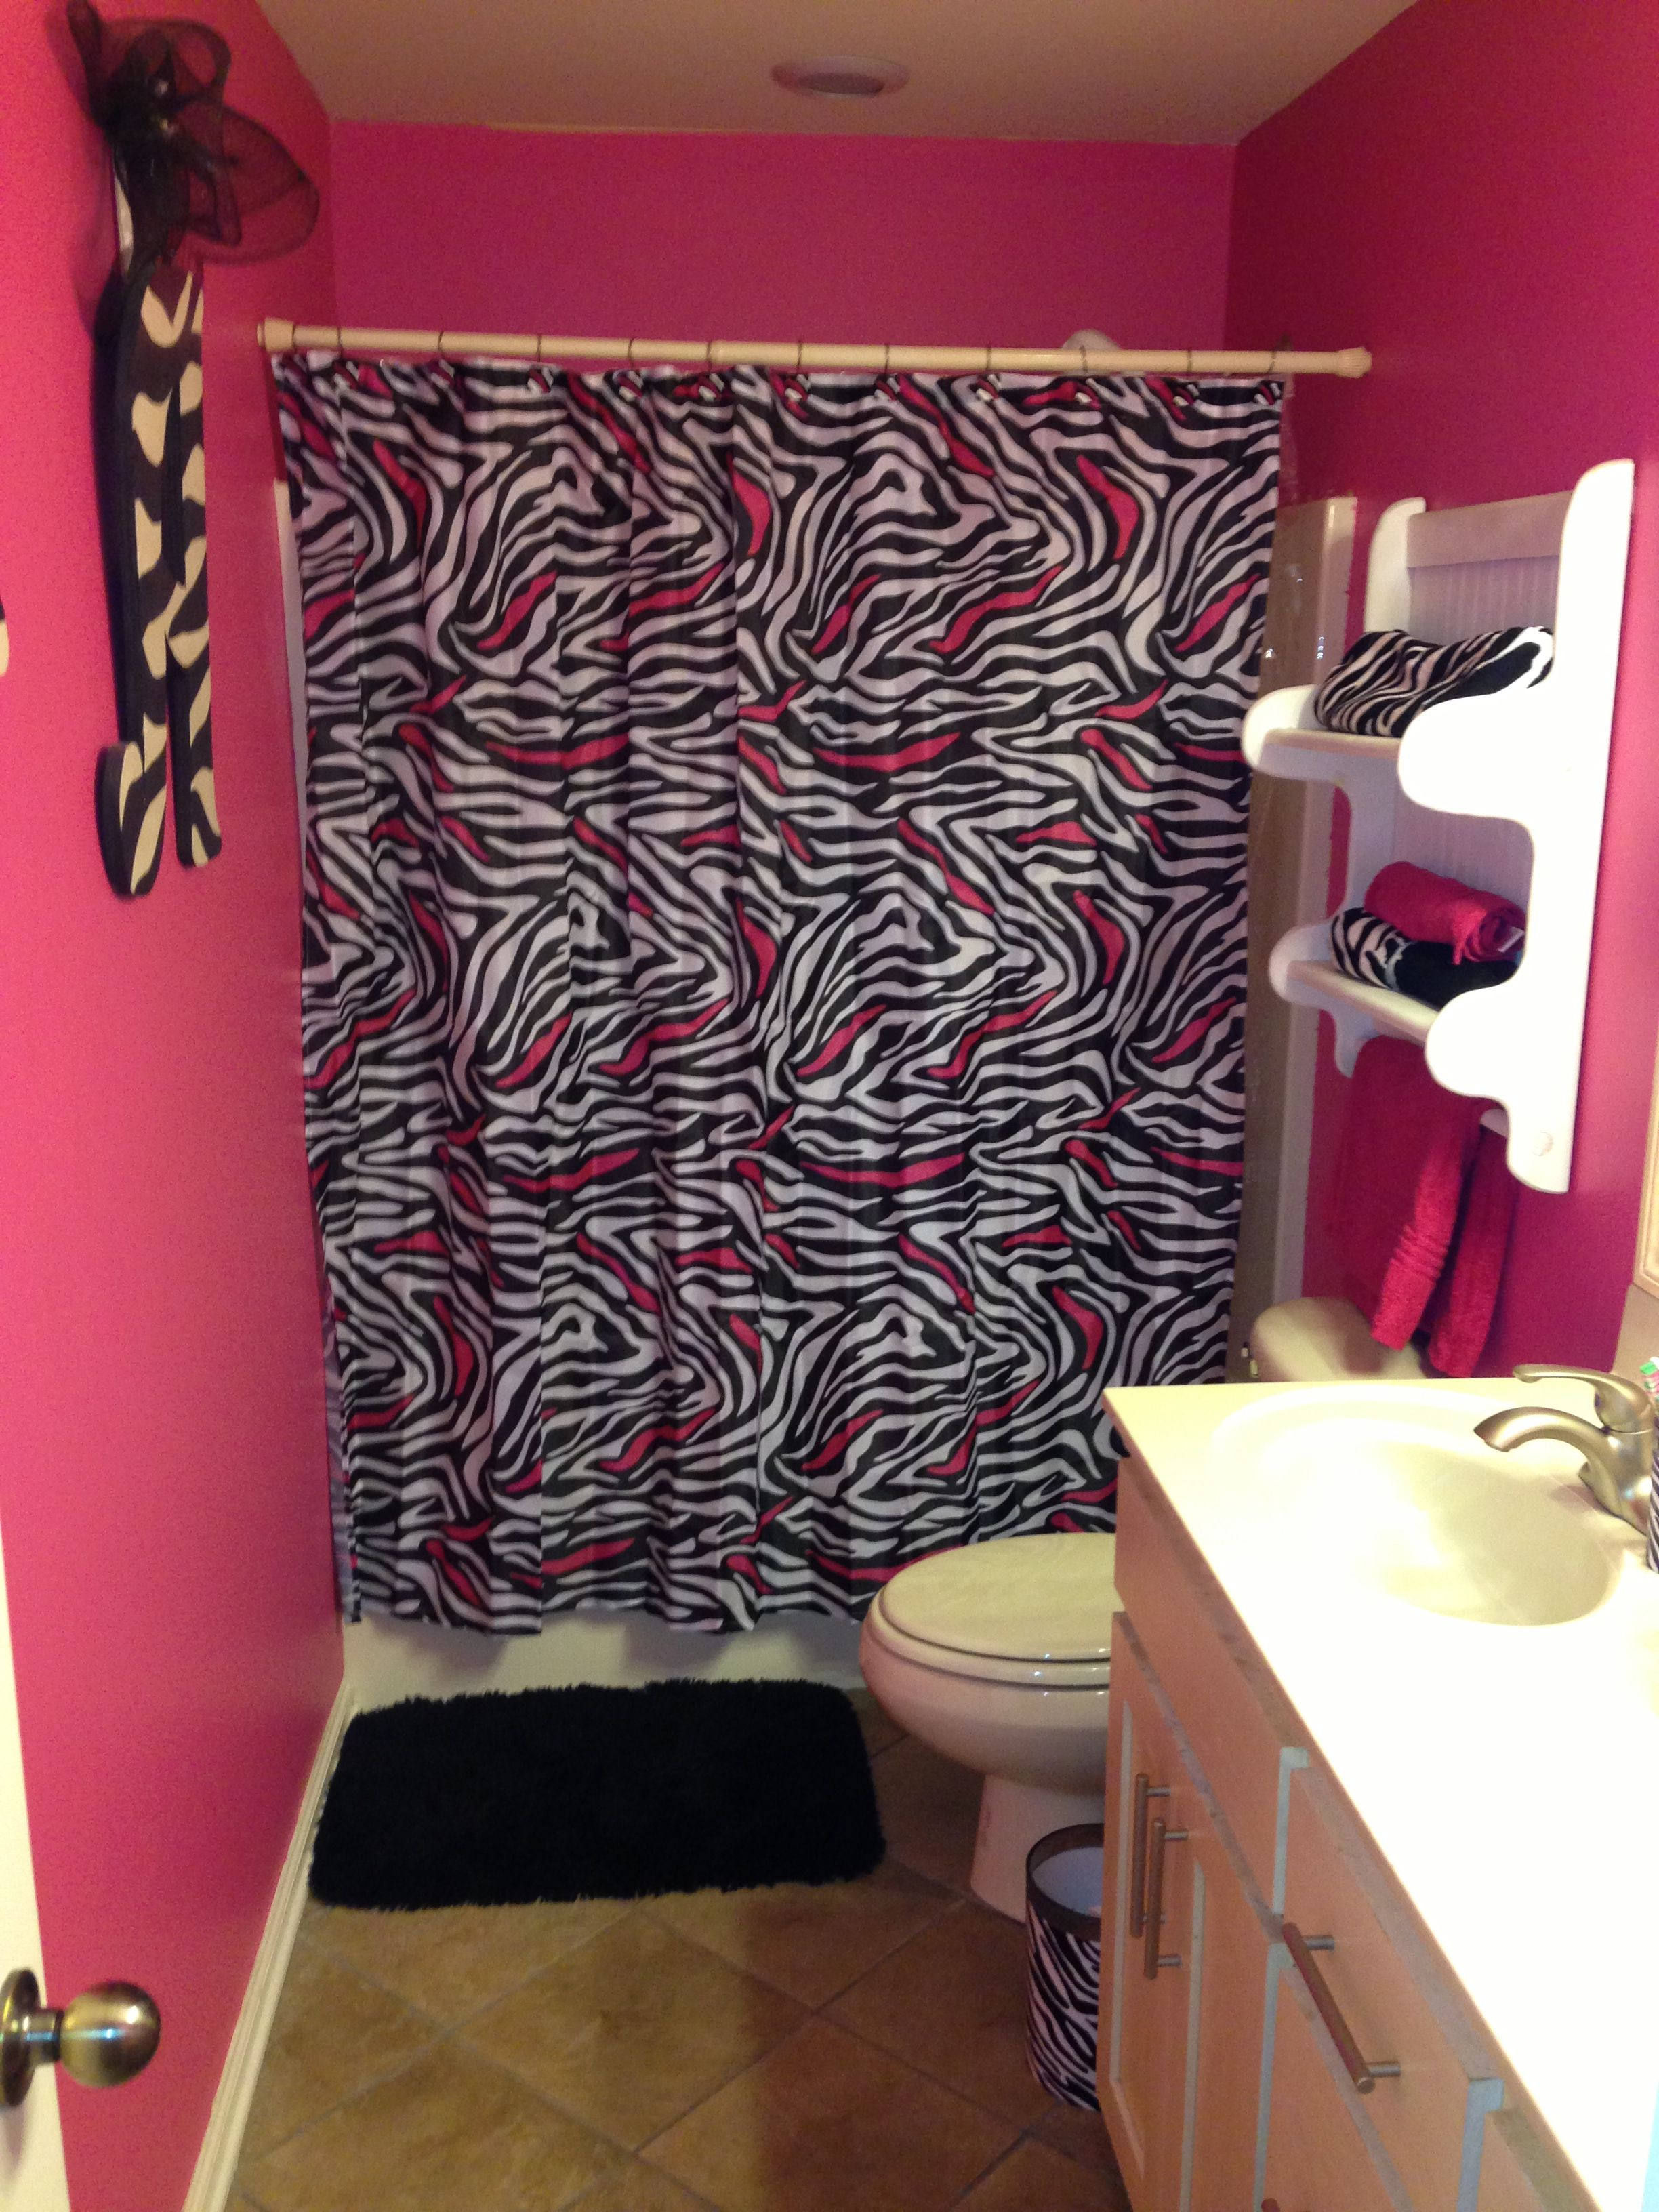 Zebra Bathroom Zebra Bathroom Pinterest Zebra